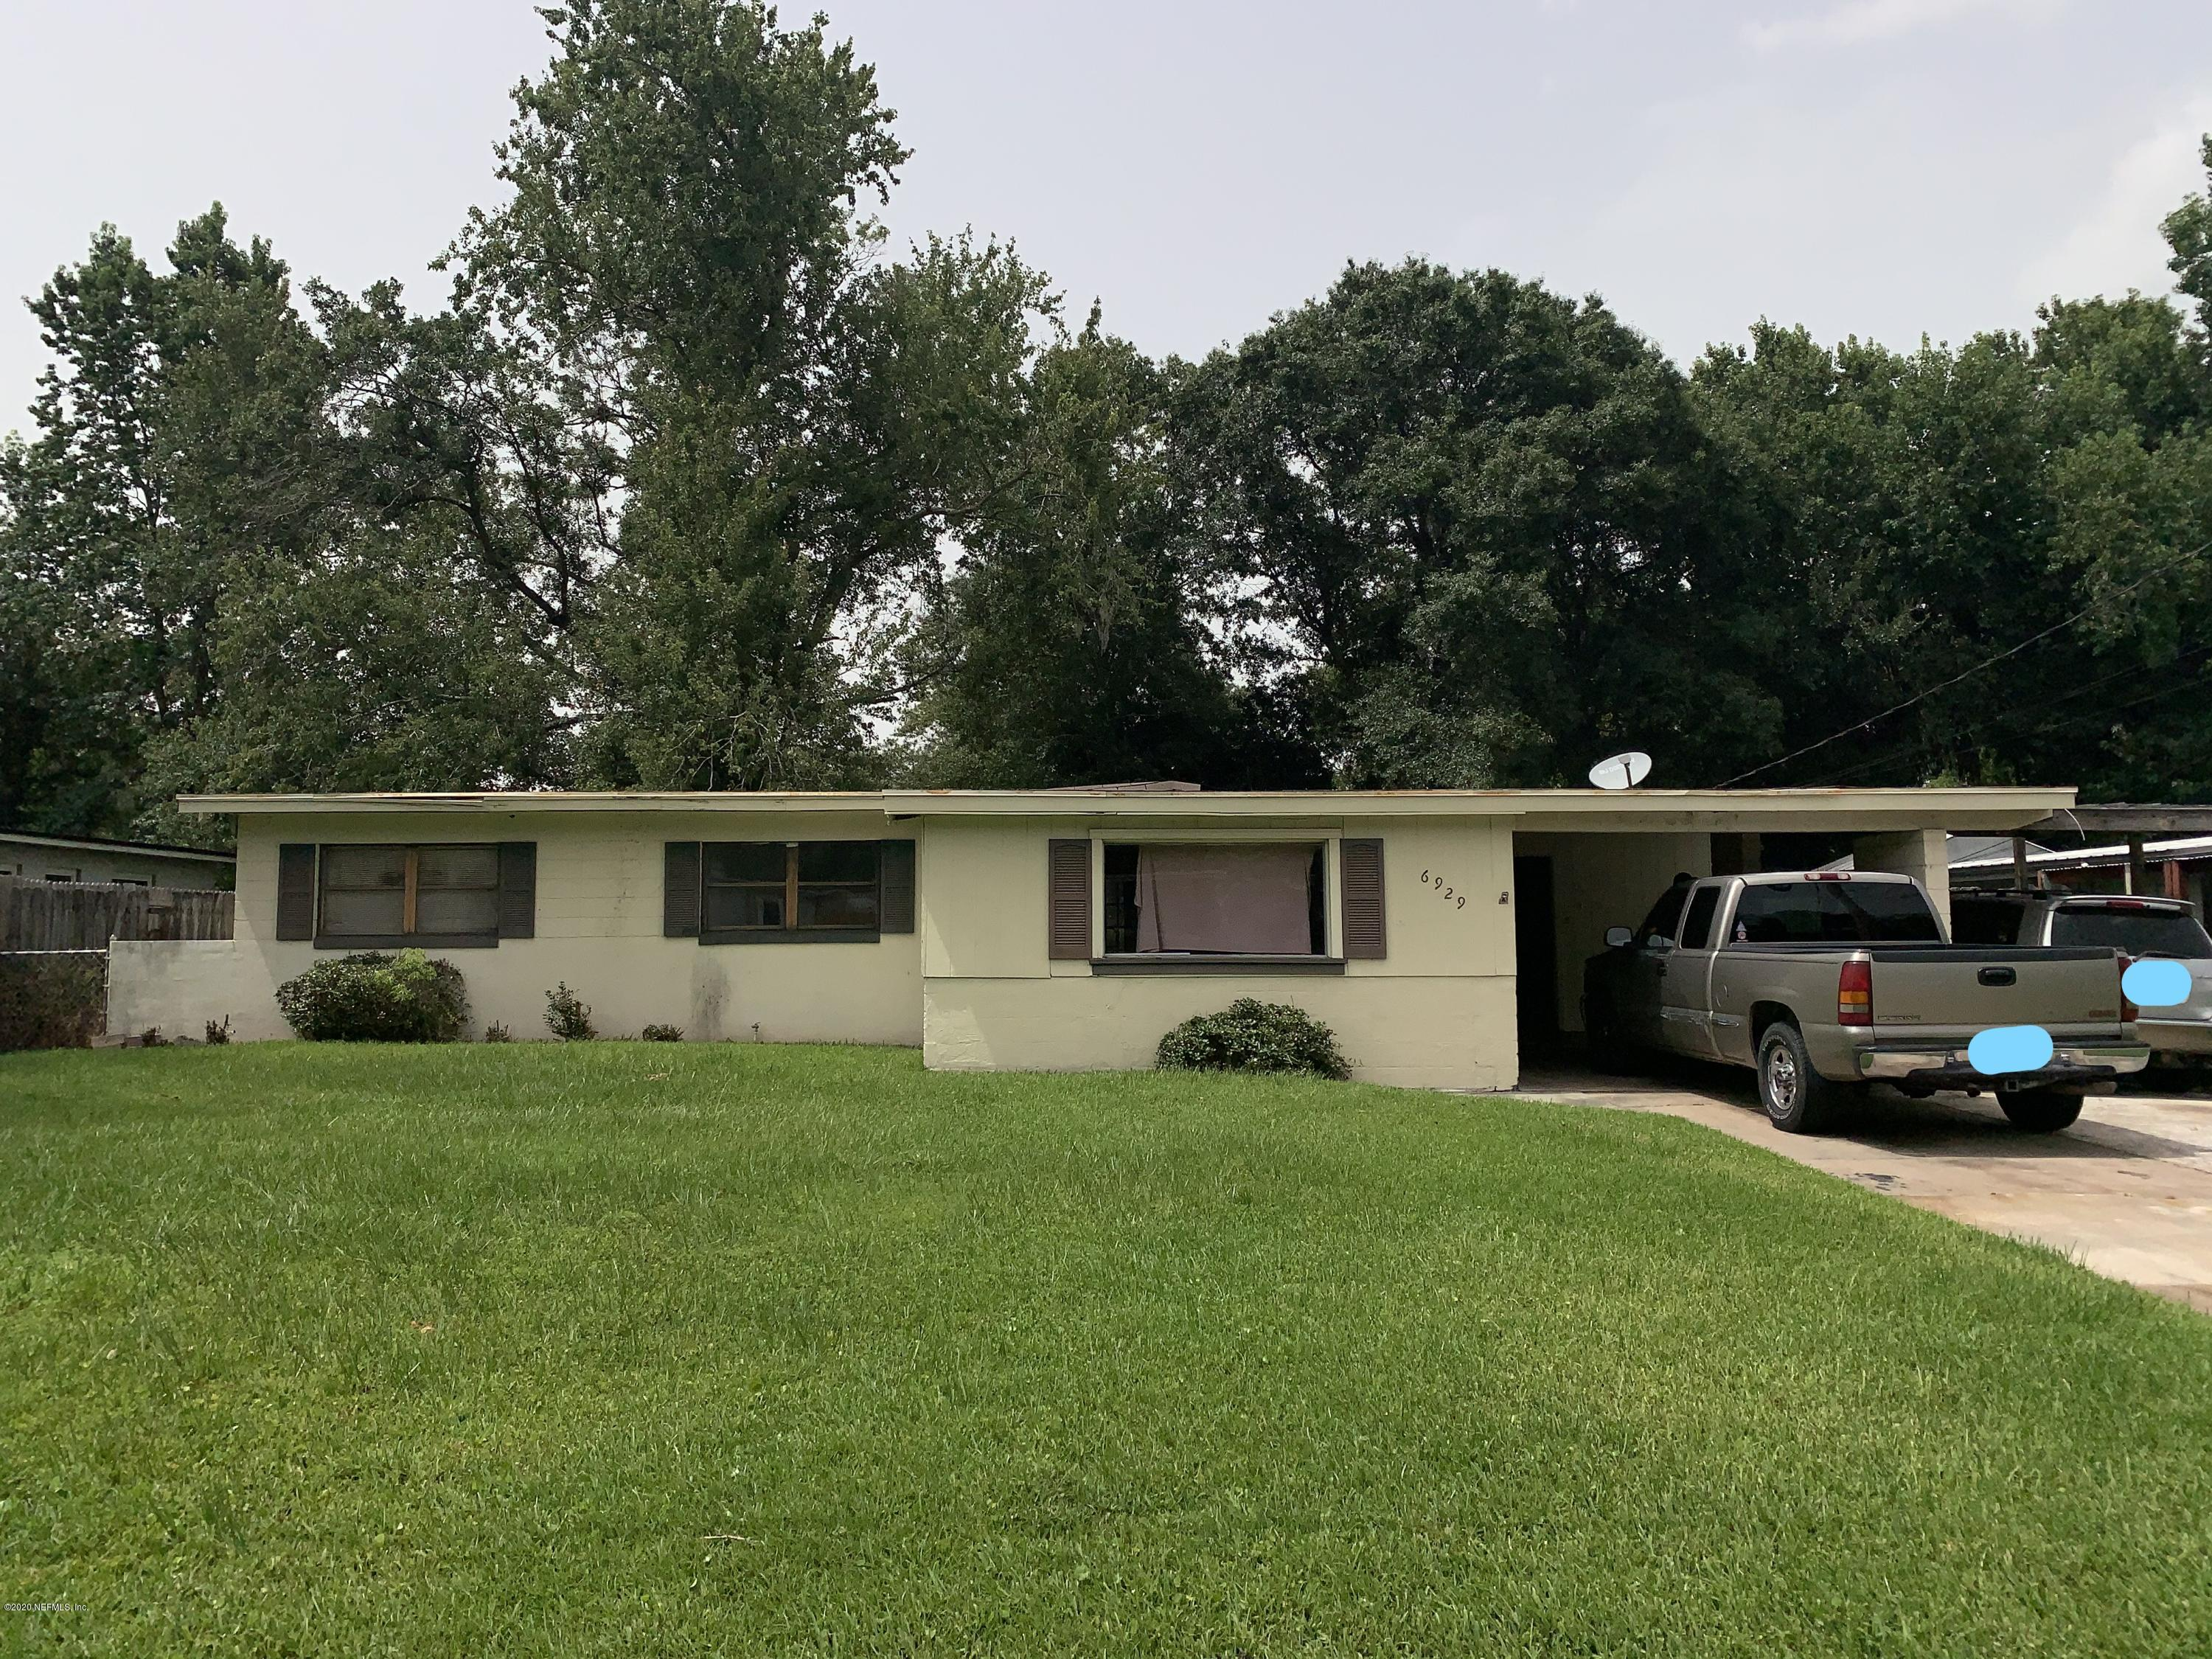 6929 ARQUES, JACKSONVILLE, FLORIDA 32205, 3 Bedrooms Bedrooms, ,2 BathroomsBathrooms,Residential,For sale,ARQUES,1062973